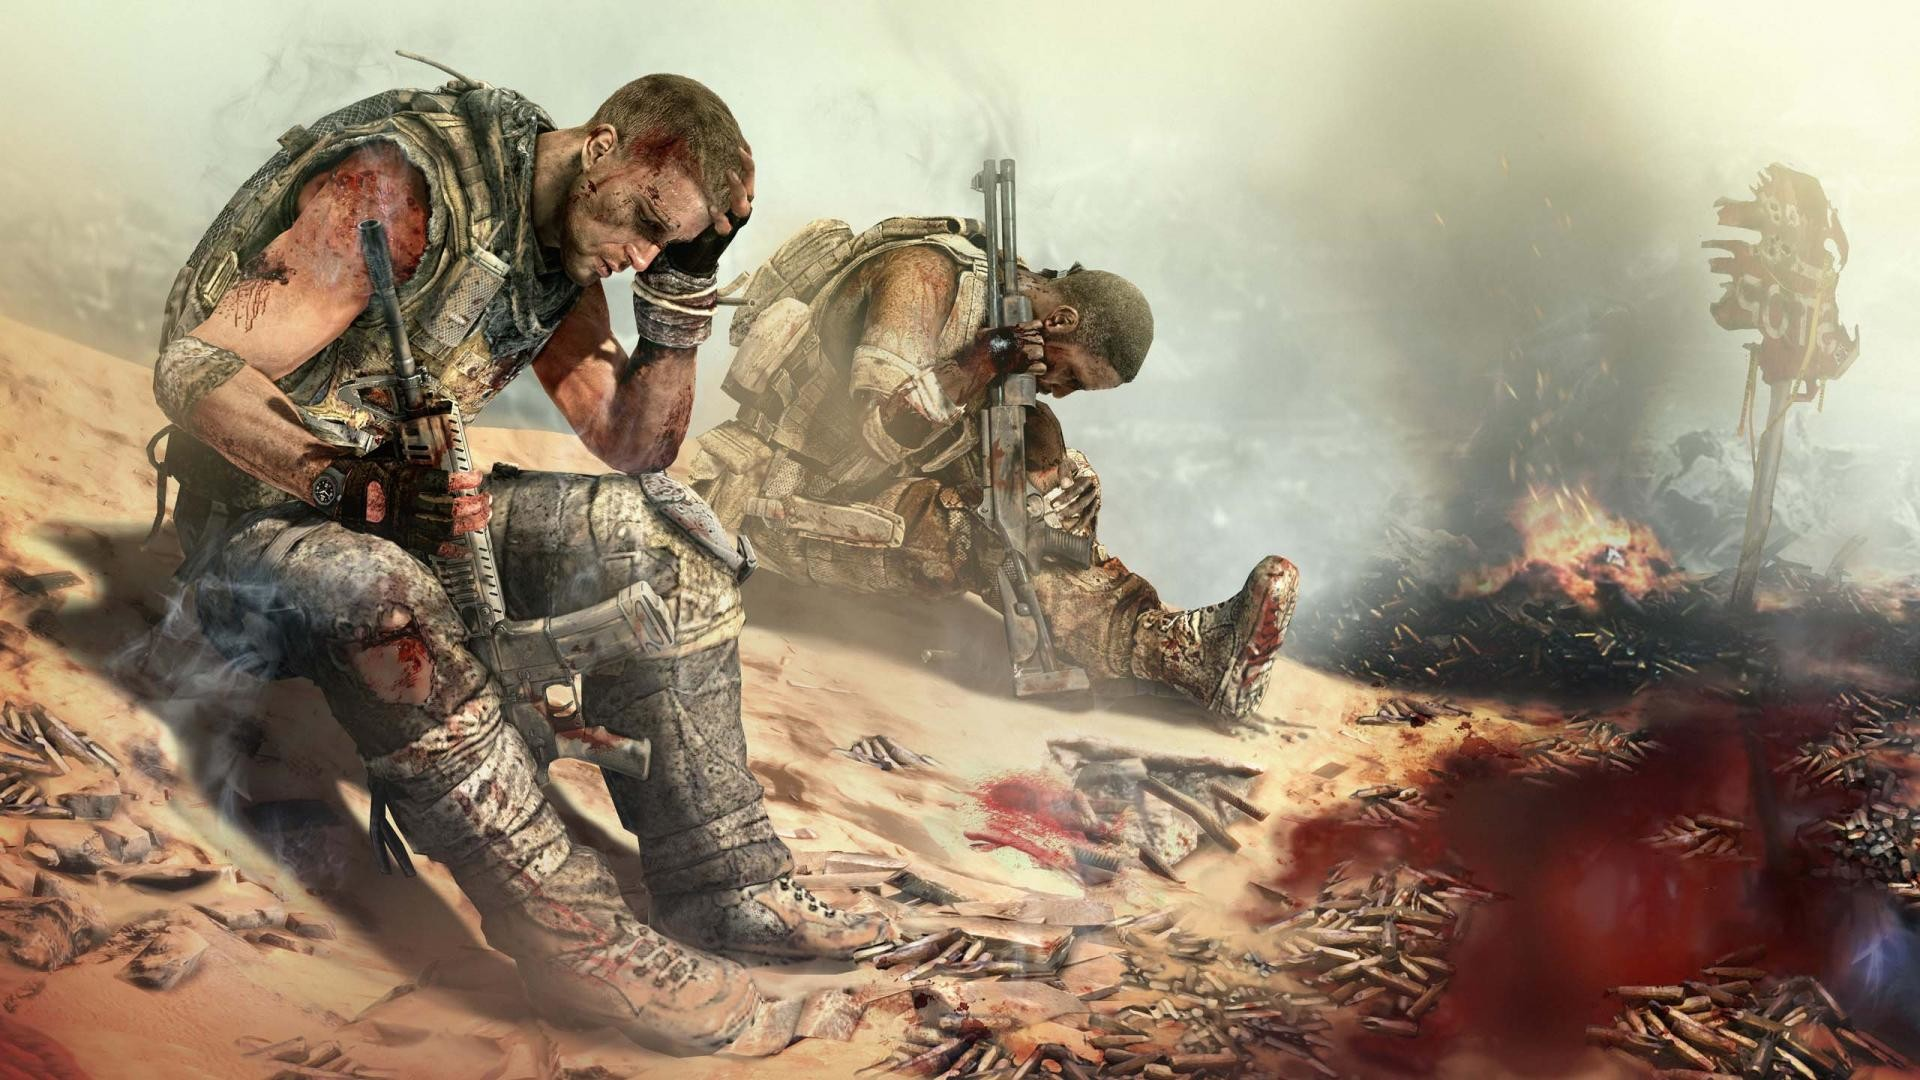 Spec Ops the Line Wallpaper 83 images 1920x1080